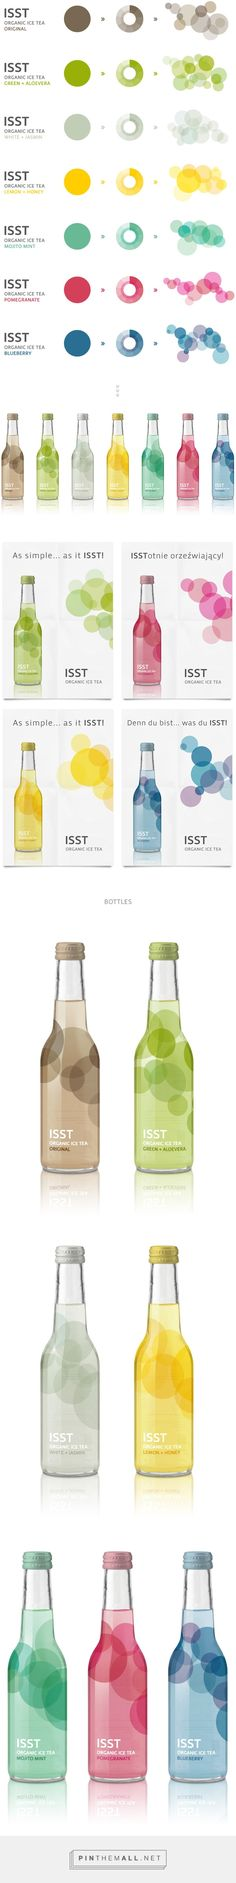 ISST - Organic Ice Tea on Behance curated by Packaging Diva PD. Packaging branding for a new line of organic beverages.